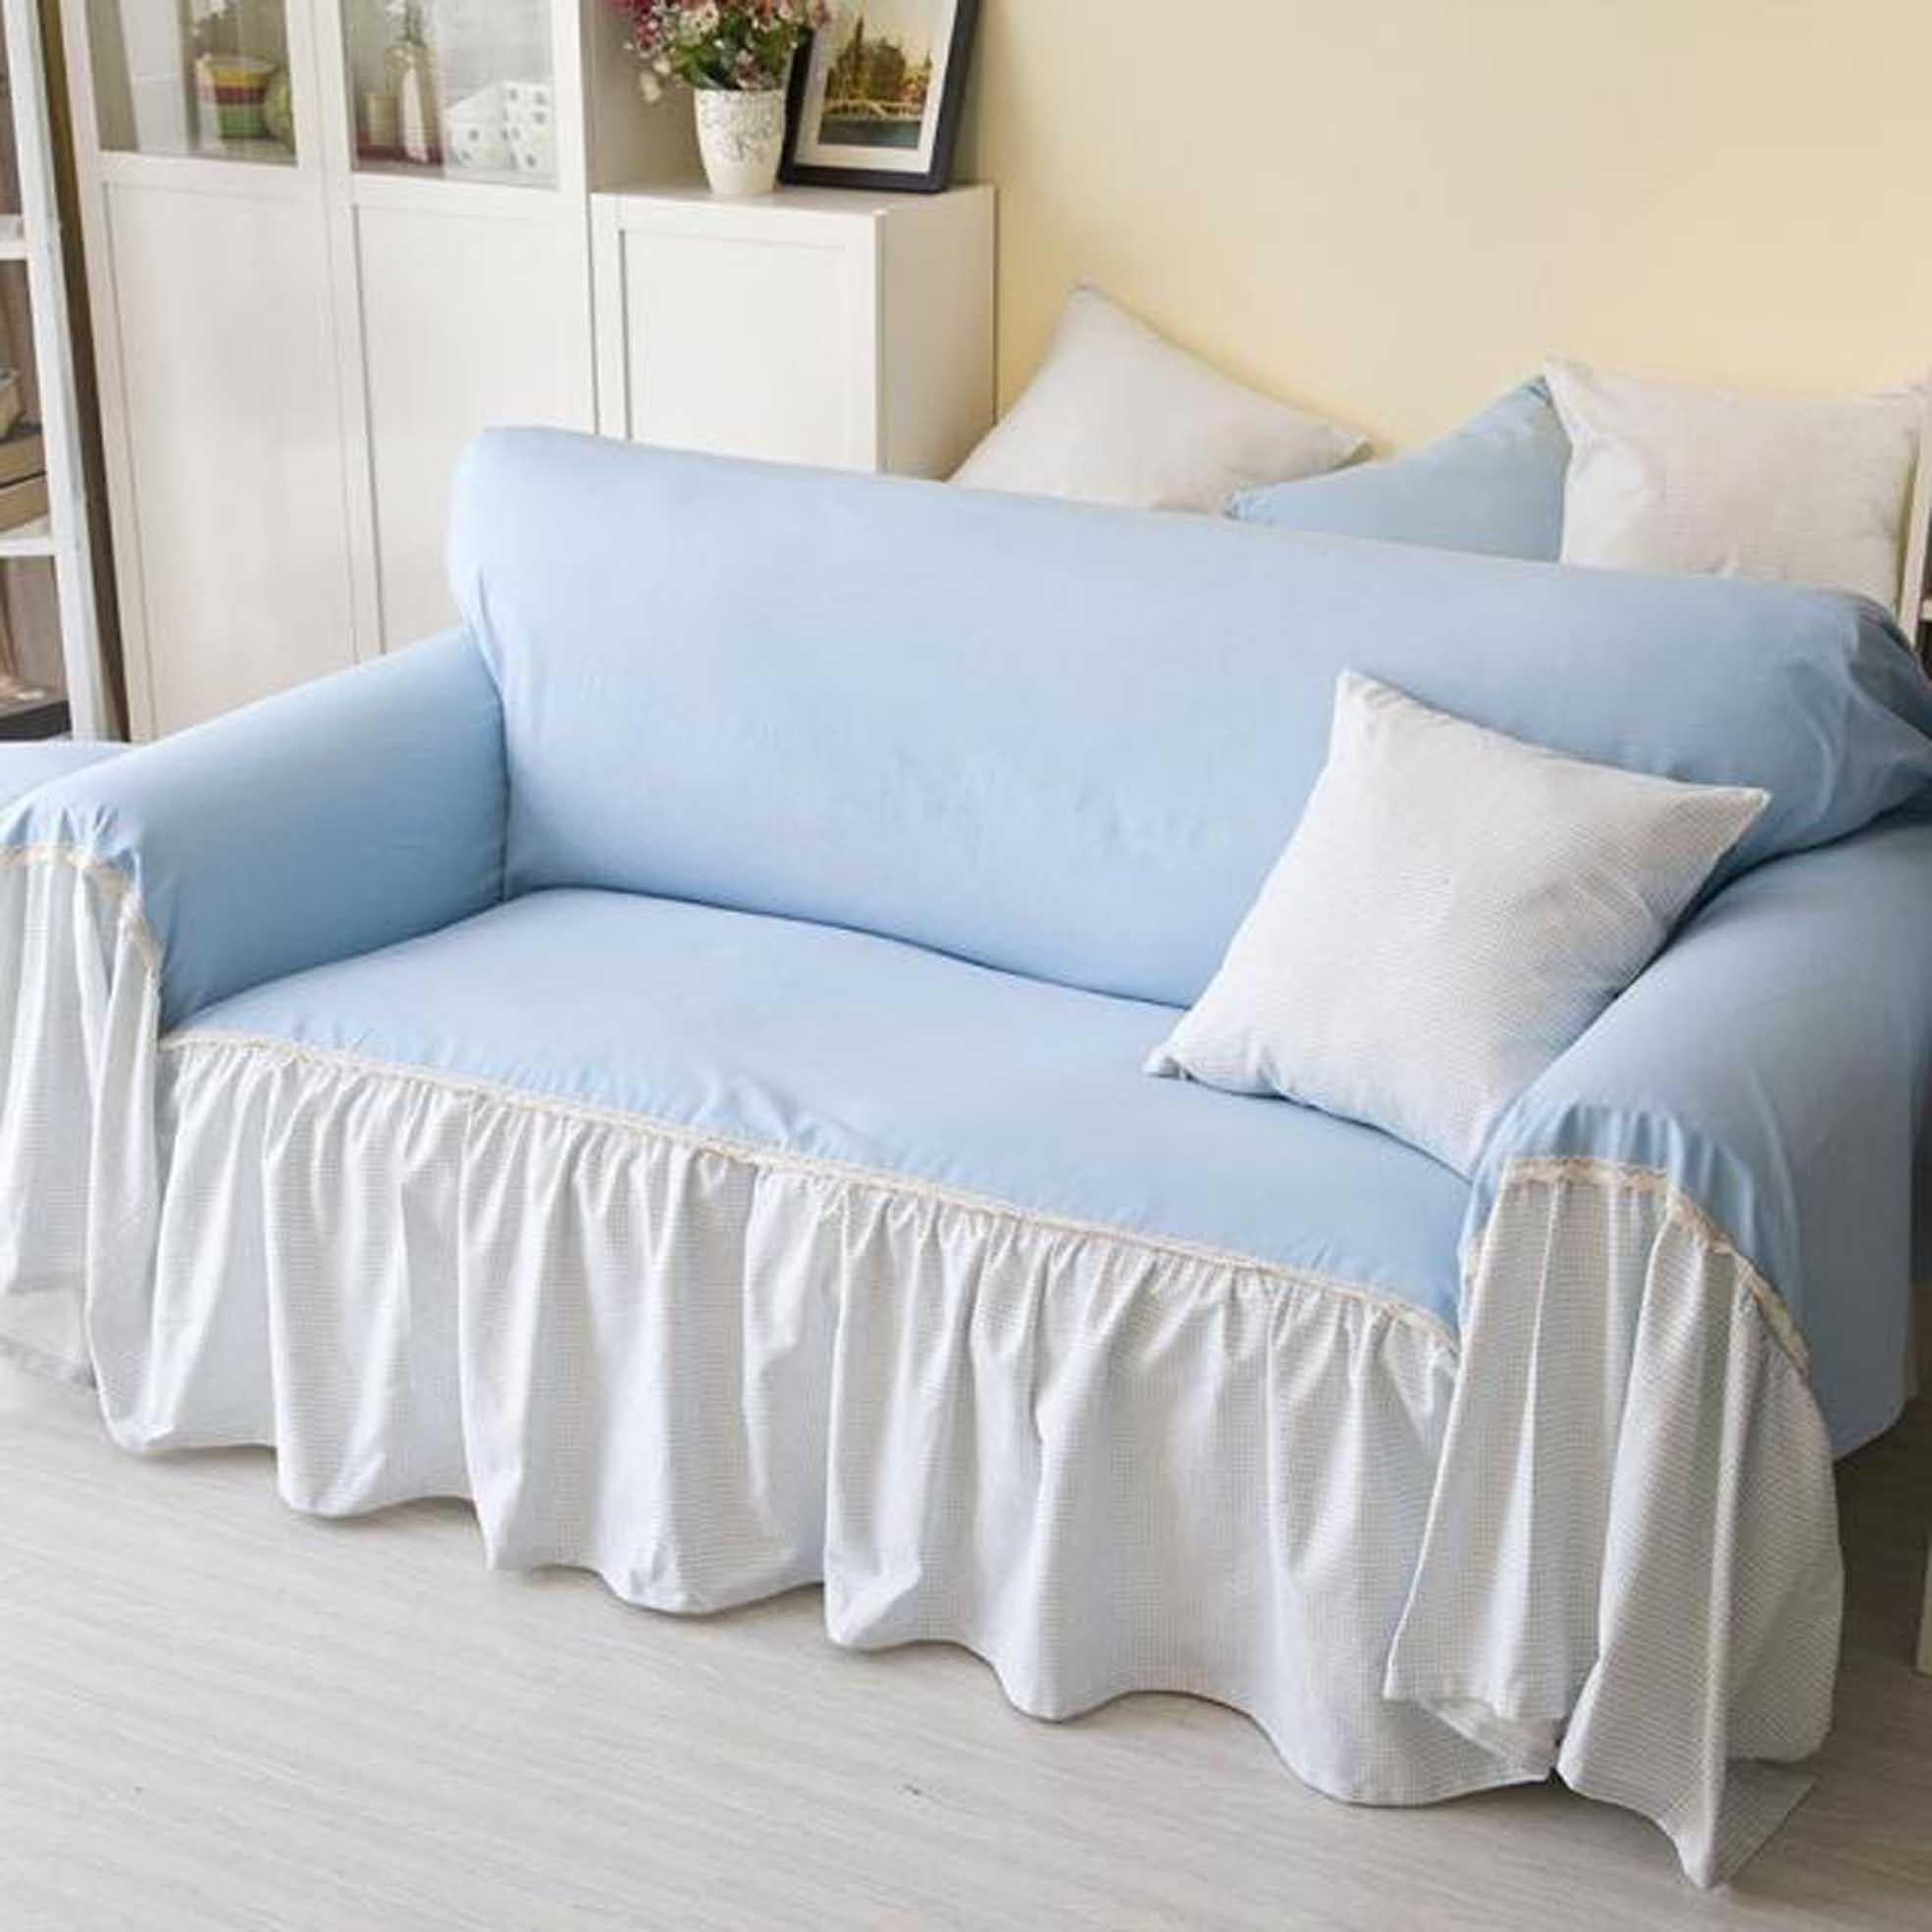 Furniture: Update Your Cozy Living Room With Cheap Sofa Covers Pertaining To Covers For Sofas And Chairs (Image 12 of 20)